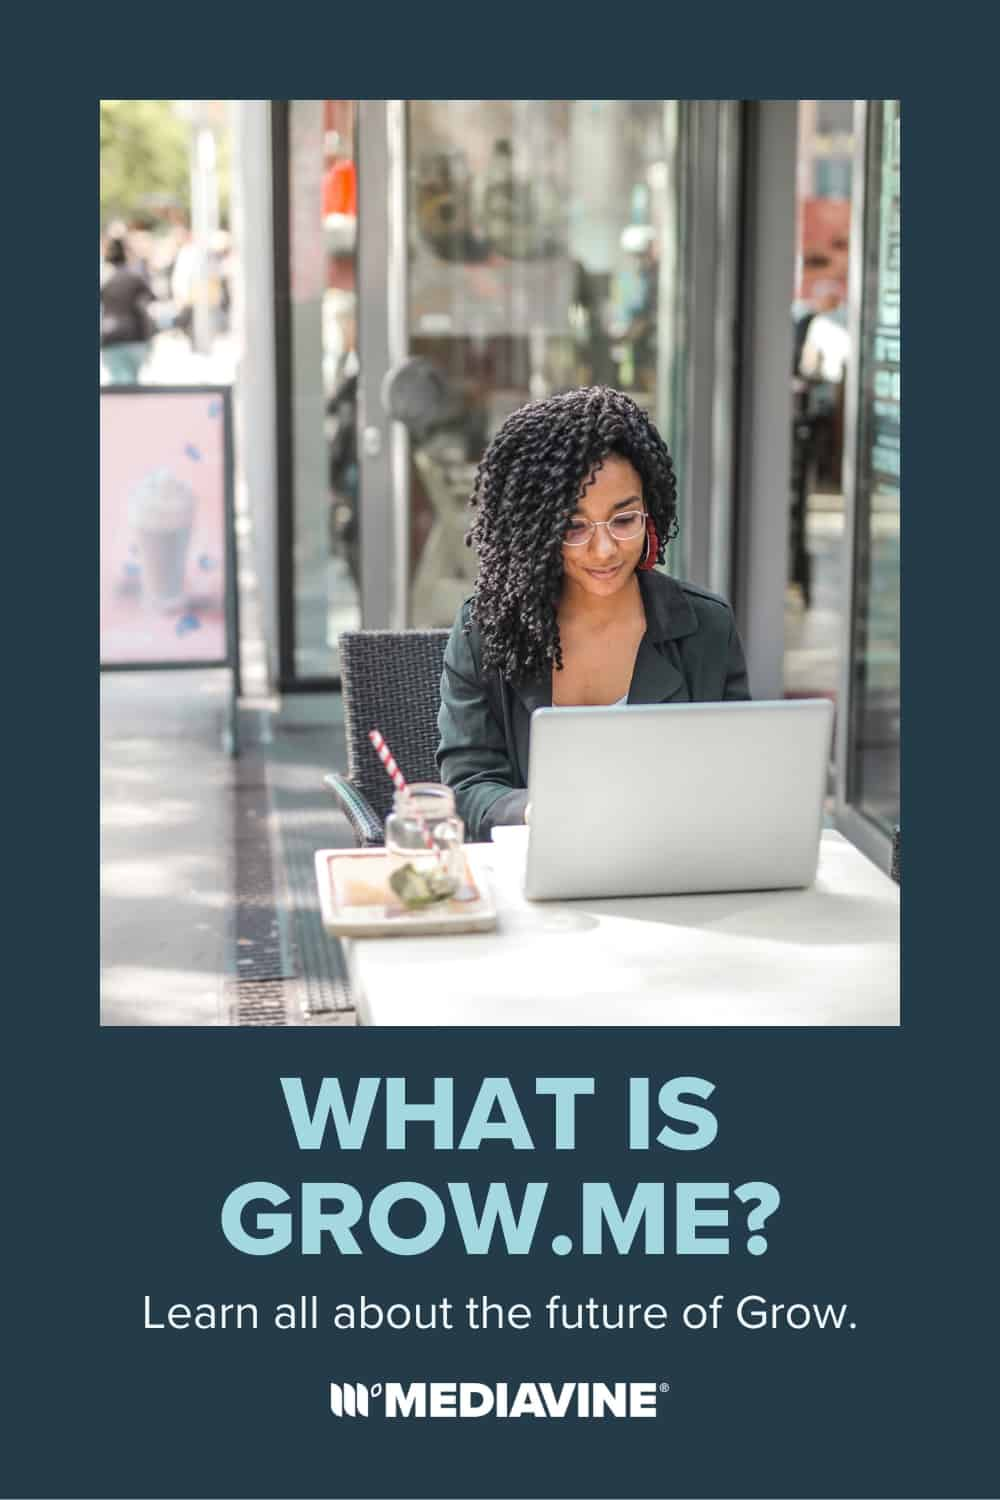 Mediavine Pinterest image - What is Grow.Me?: Learn all about the future of Grow